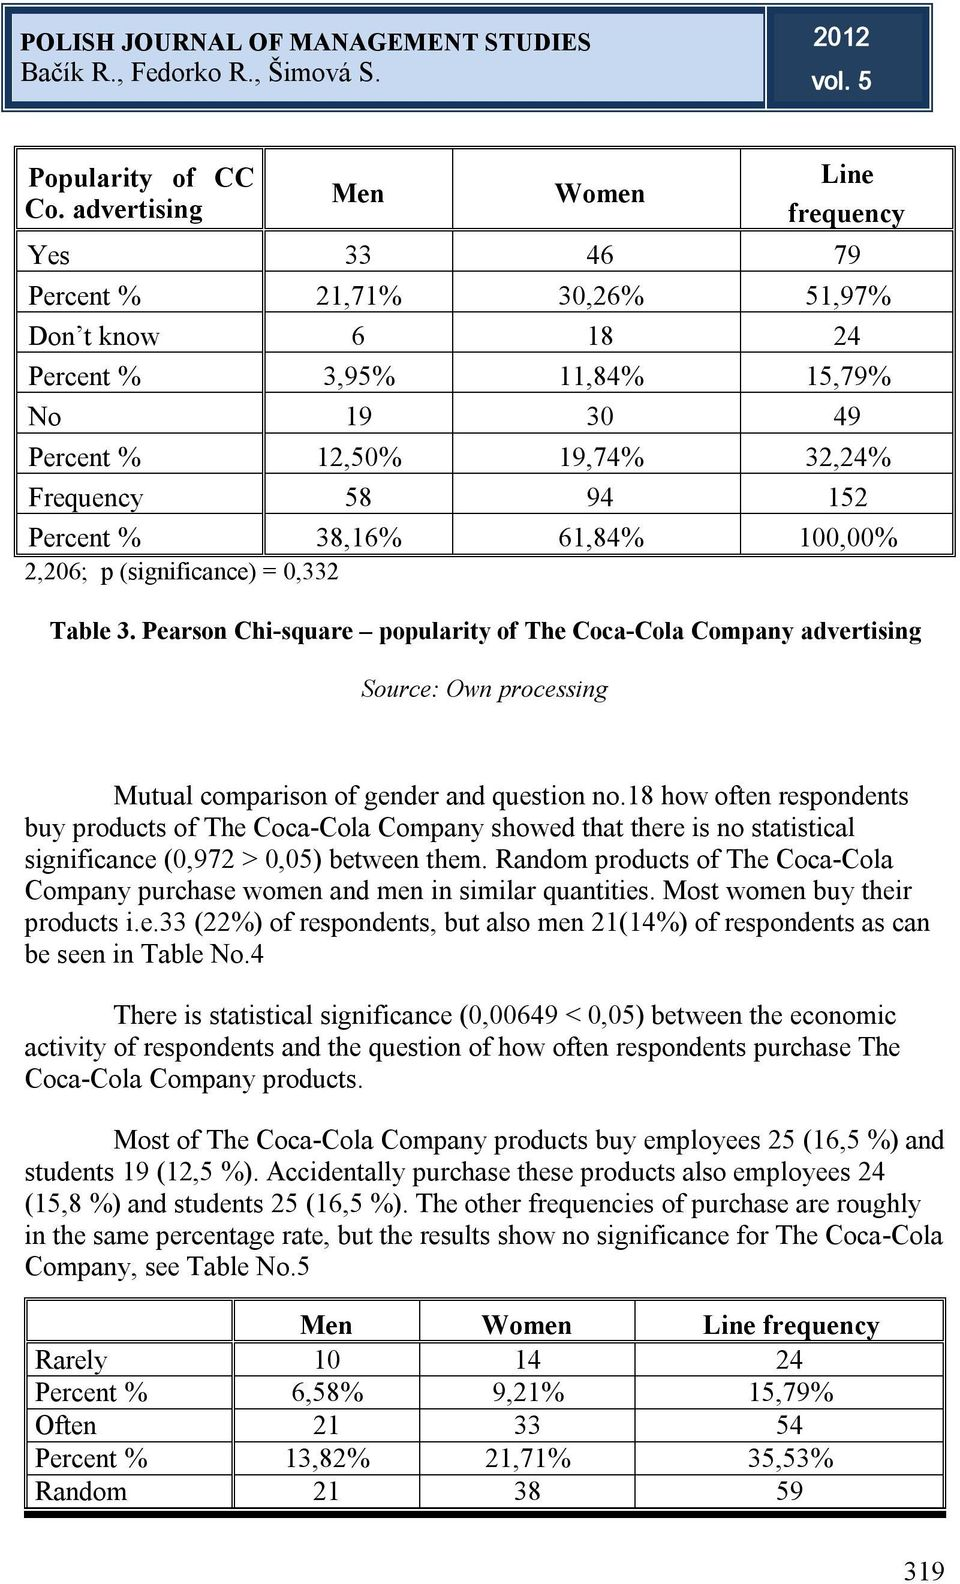 Percent % 38,16% 61,84% 100,00% 2,206; p (significance) = 0,332 Table 3. Pearson Chi-square popularity of The Coca-Cola Company advertising Mutual comparison of gender and question no.